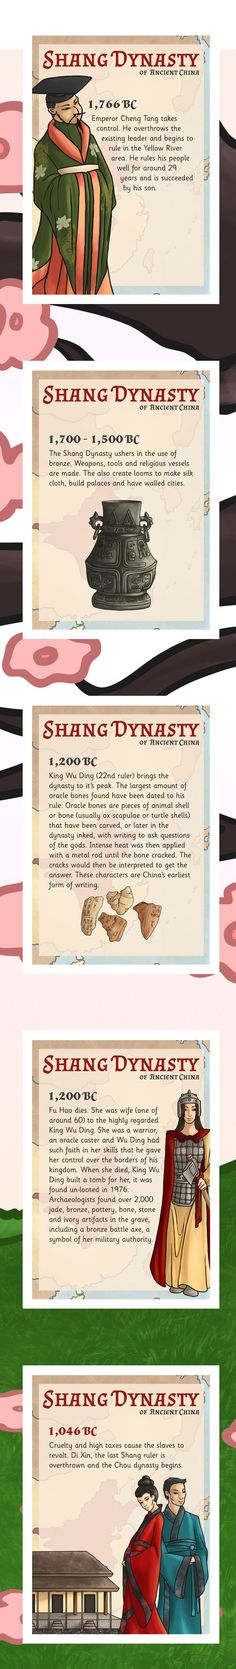 This is one of the most interesting pieces that shows a simple but rather complete view of the Shang Dynasty. Starting with Shang Tang, the first ruler, to Di Xin, the last ruler of the Shang Dynasty. The Shang Dynasty ruled from 1,766 BC to 1,046, approximately 700 years.